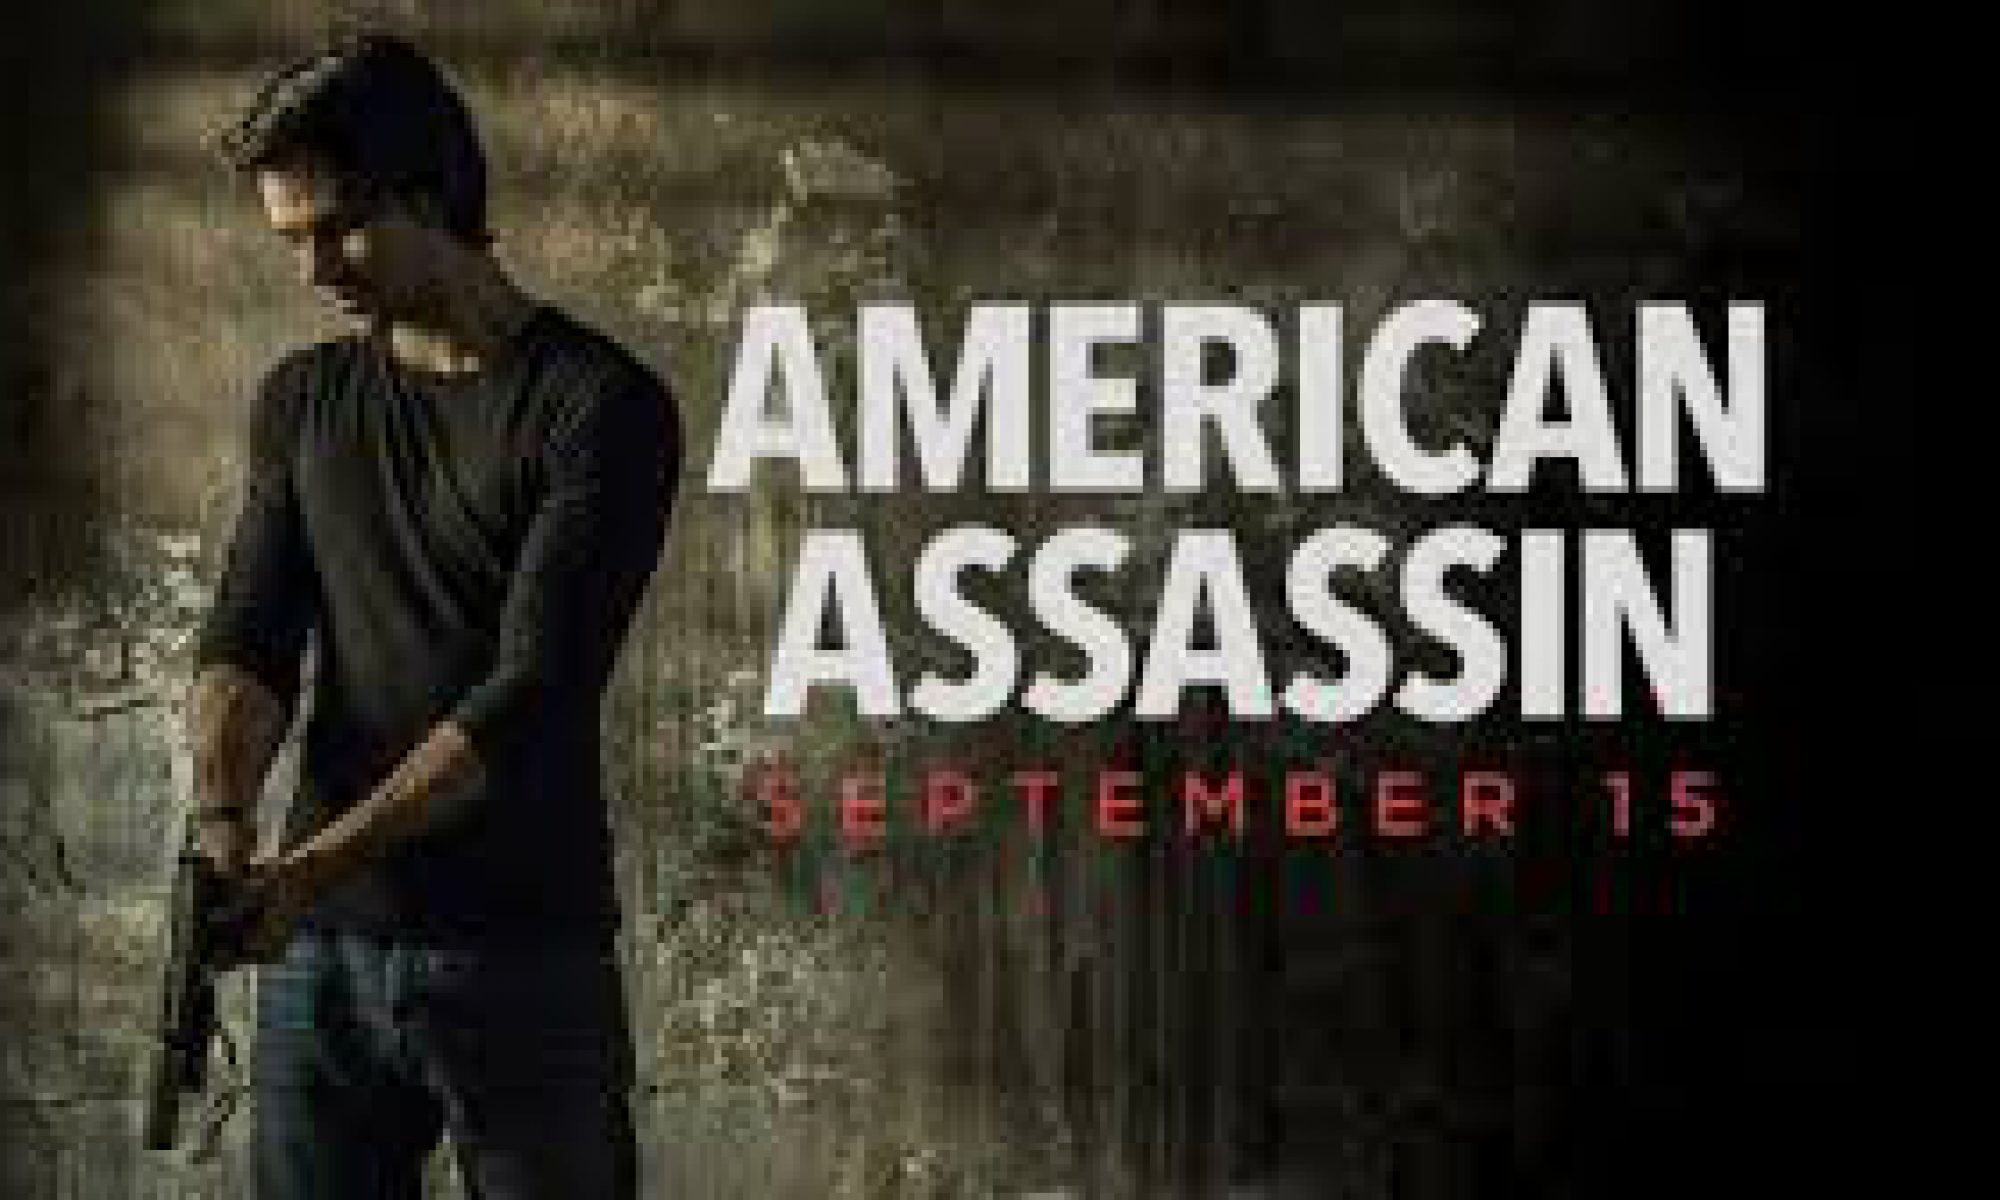 american assassin full movie free watch